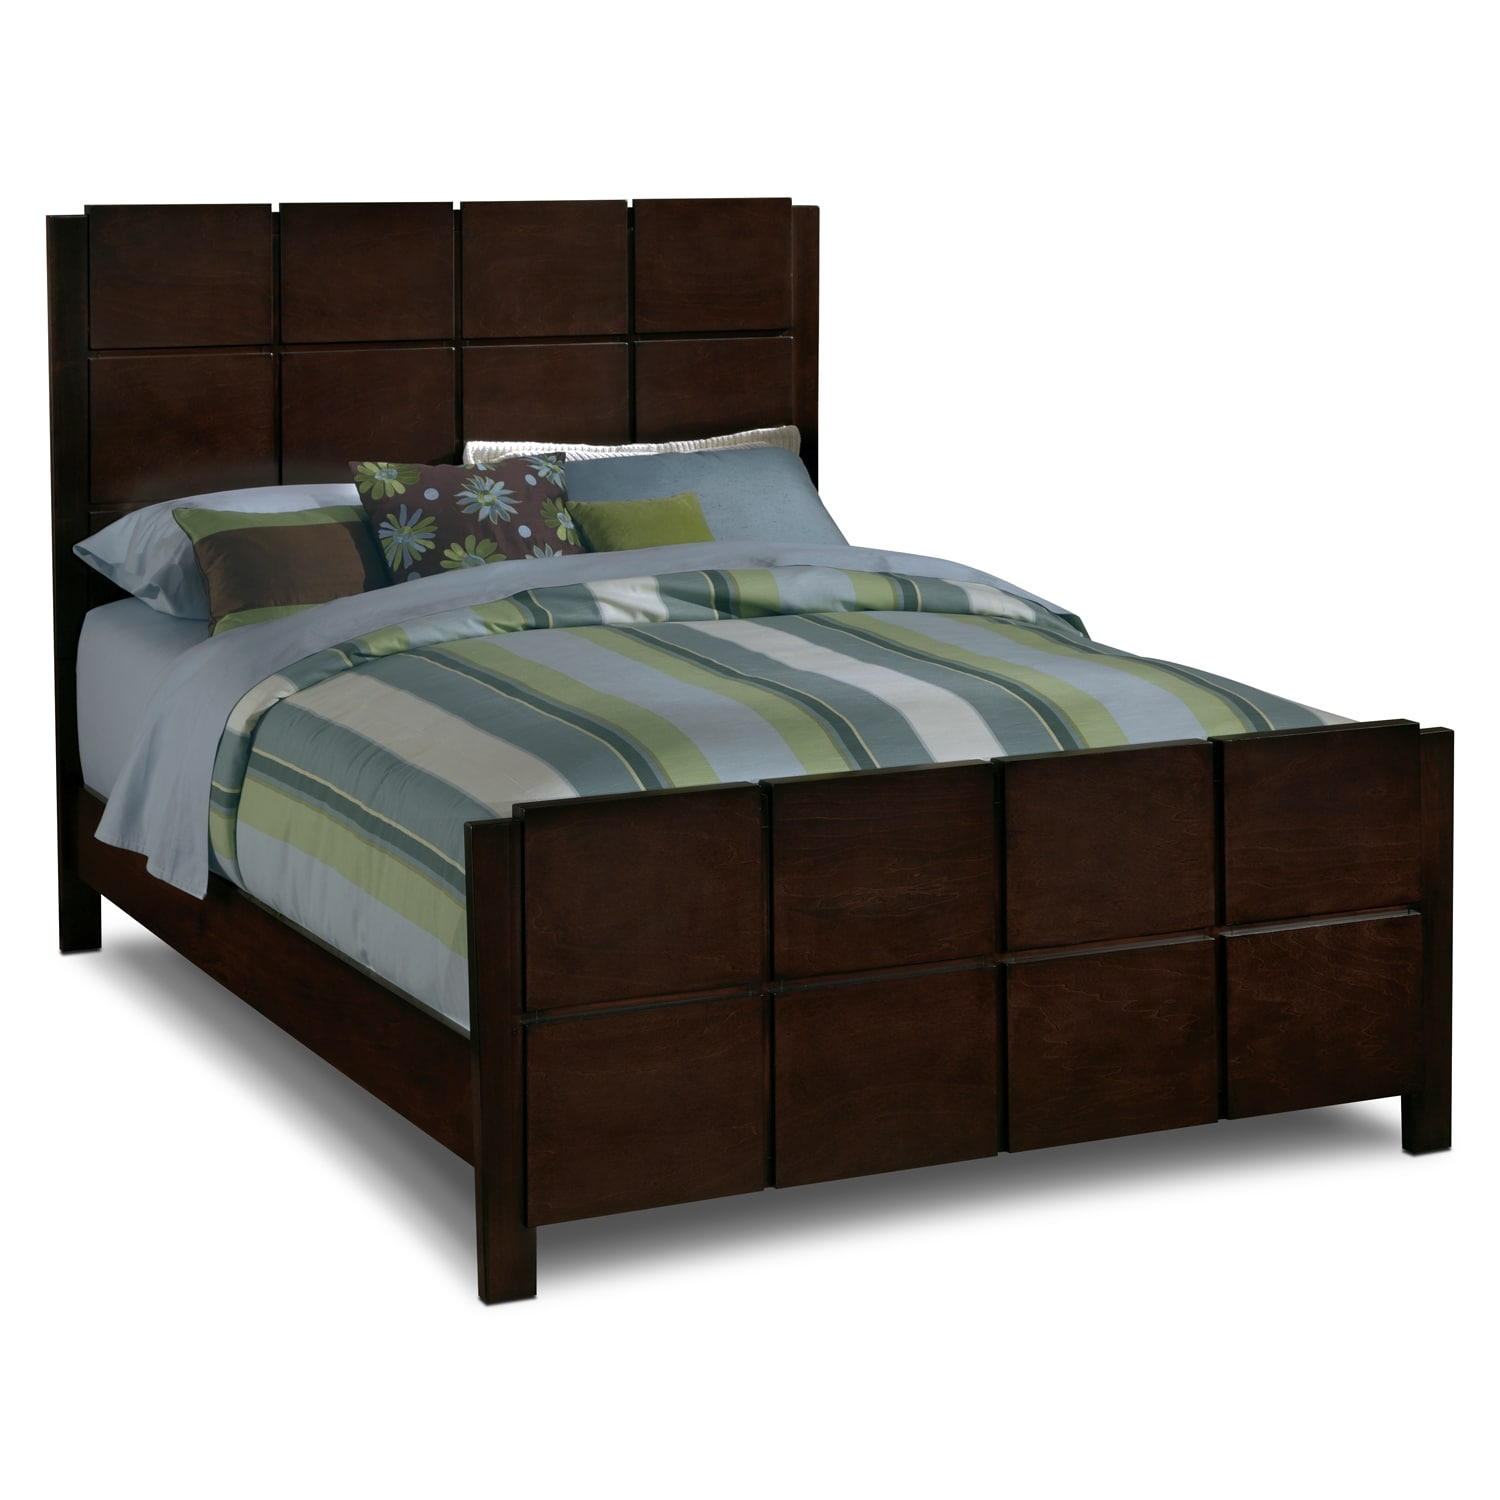 Mosaic queen bed dark brown value city furniture for Bedroom sets with mattress